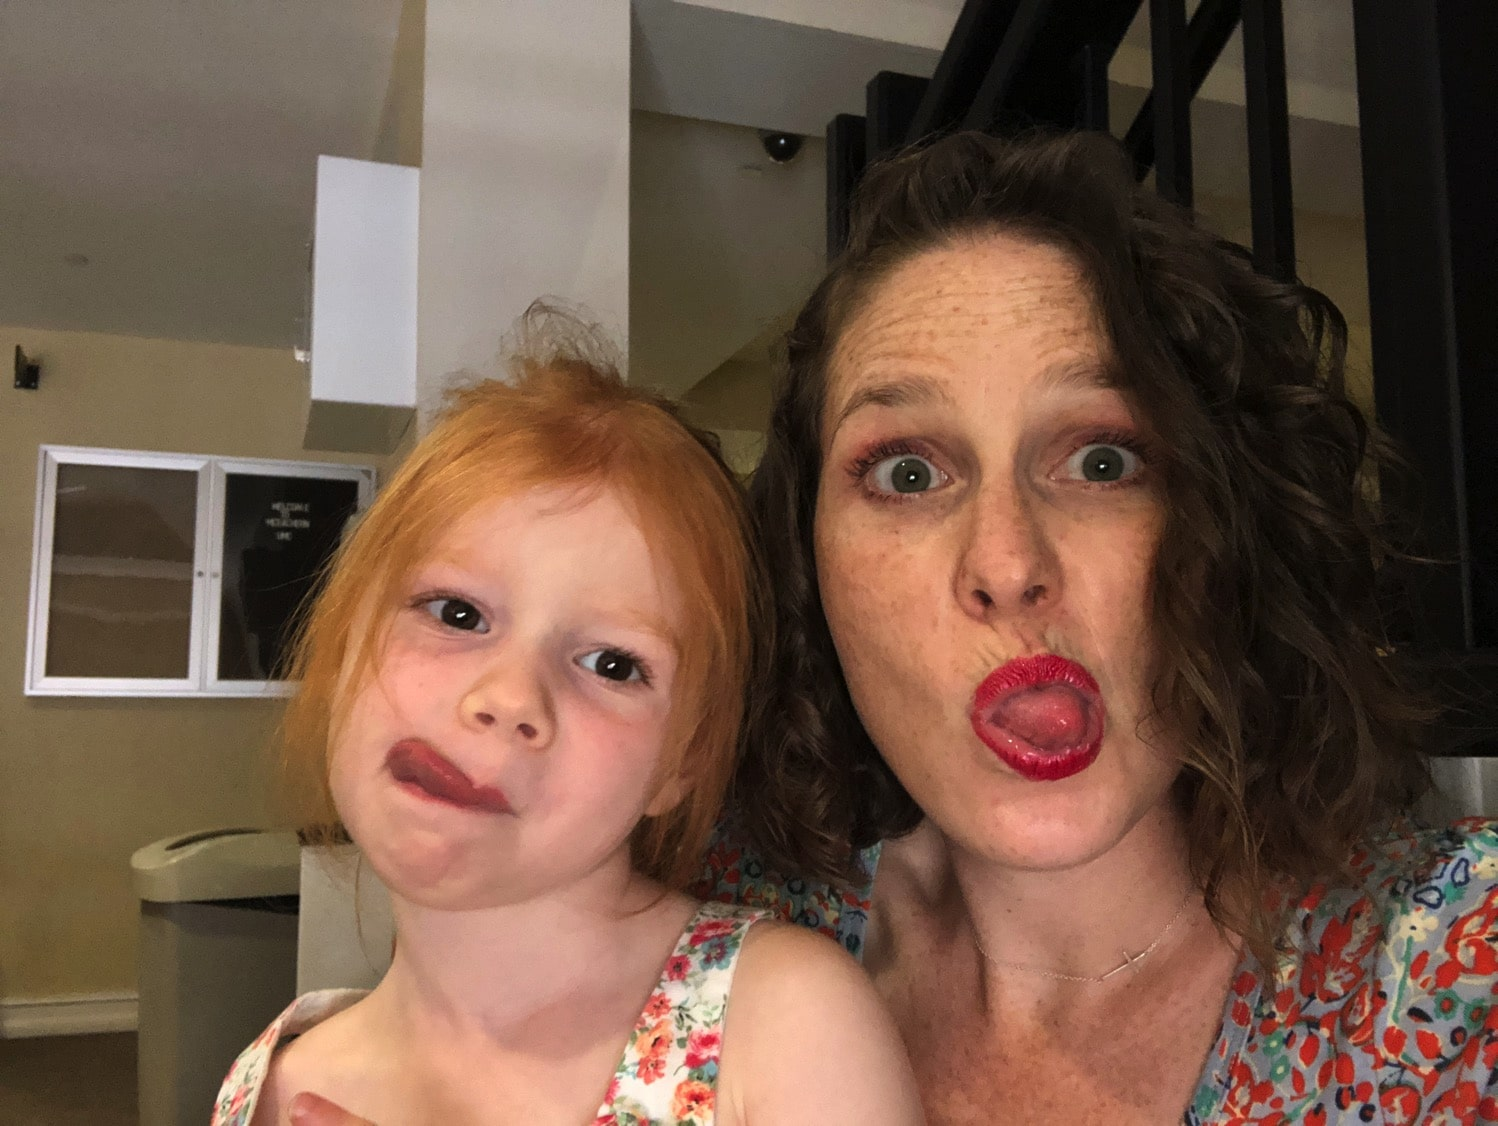 silly faces with B